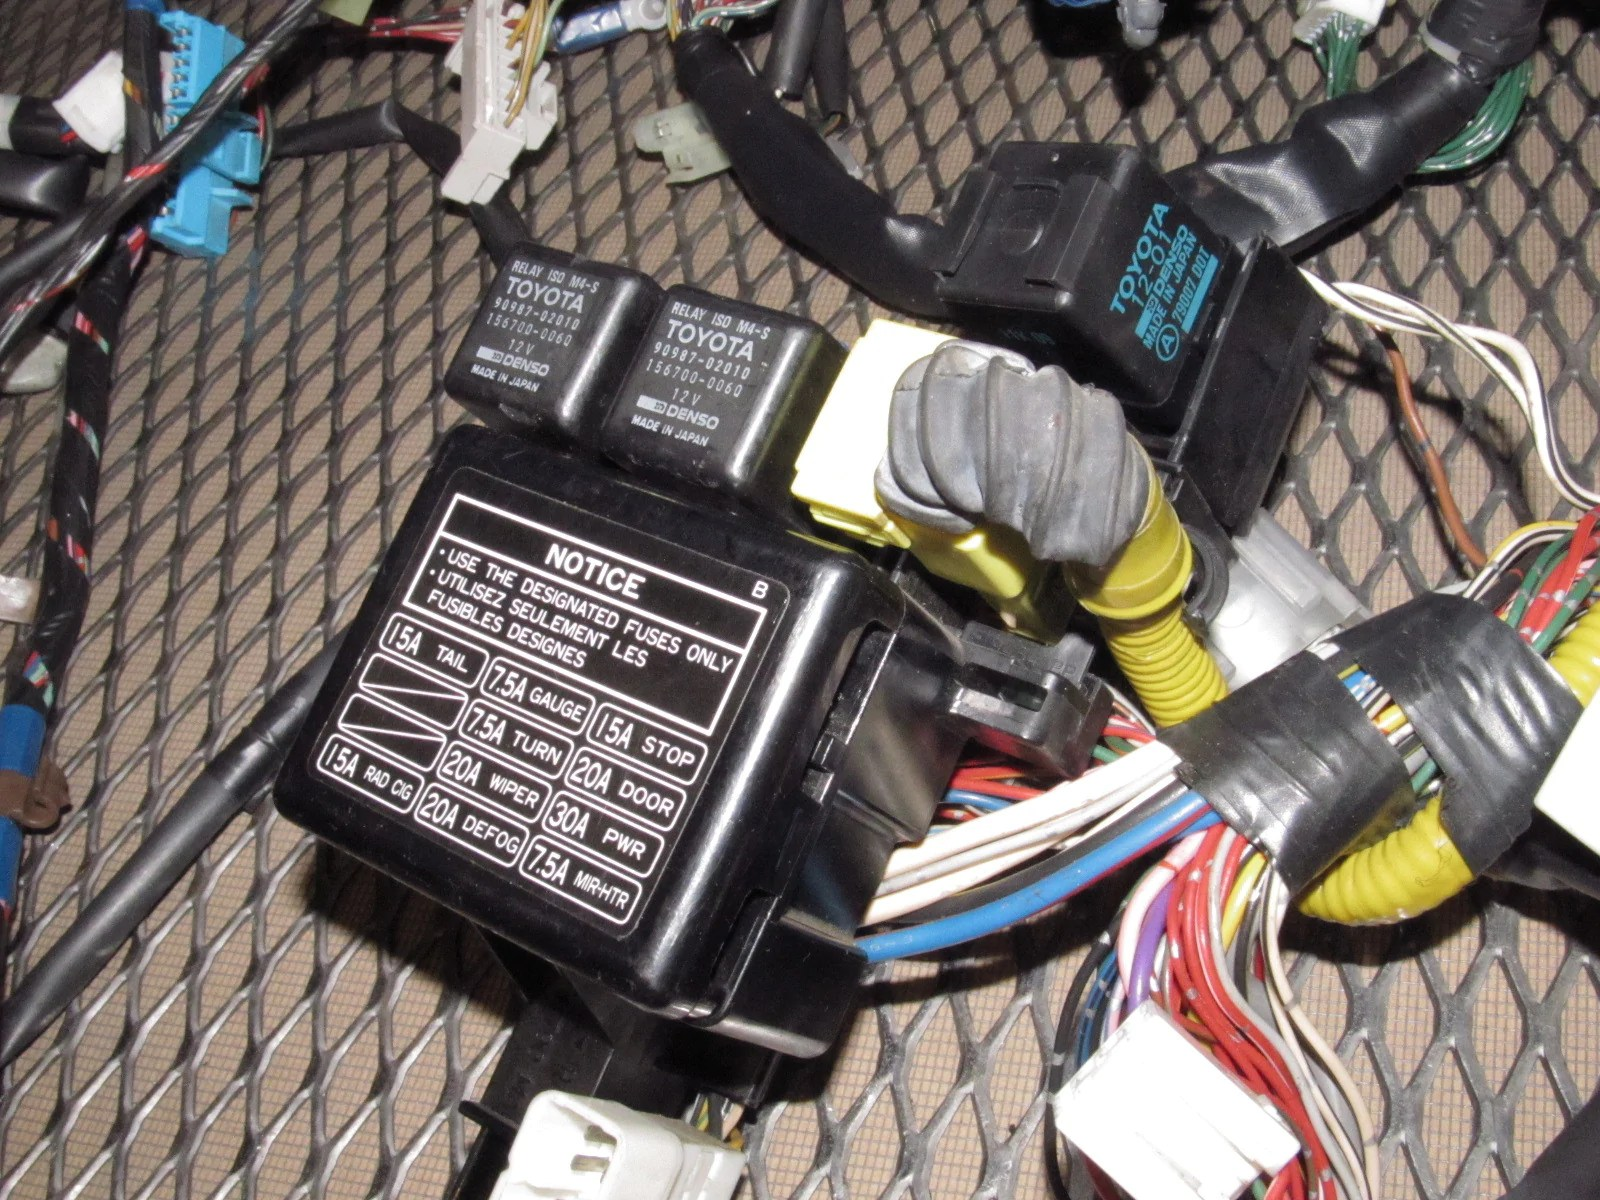 1993 toyota mr2 wiring harness wiring diagram used 1993 toyota mr2 wiring harness [ 1600 x 1200 Pixel ]